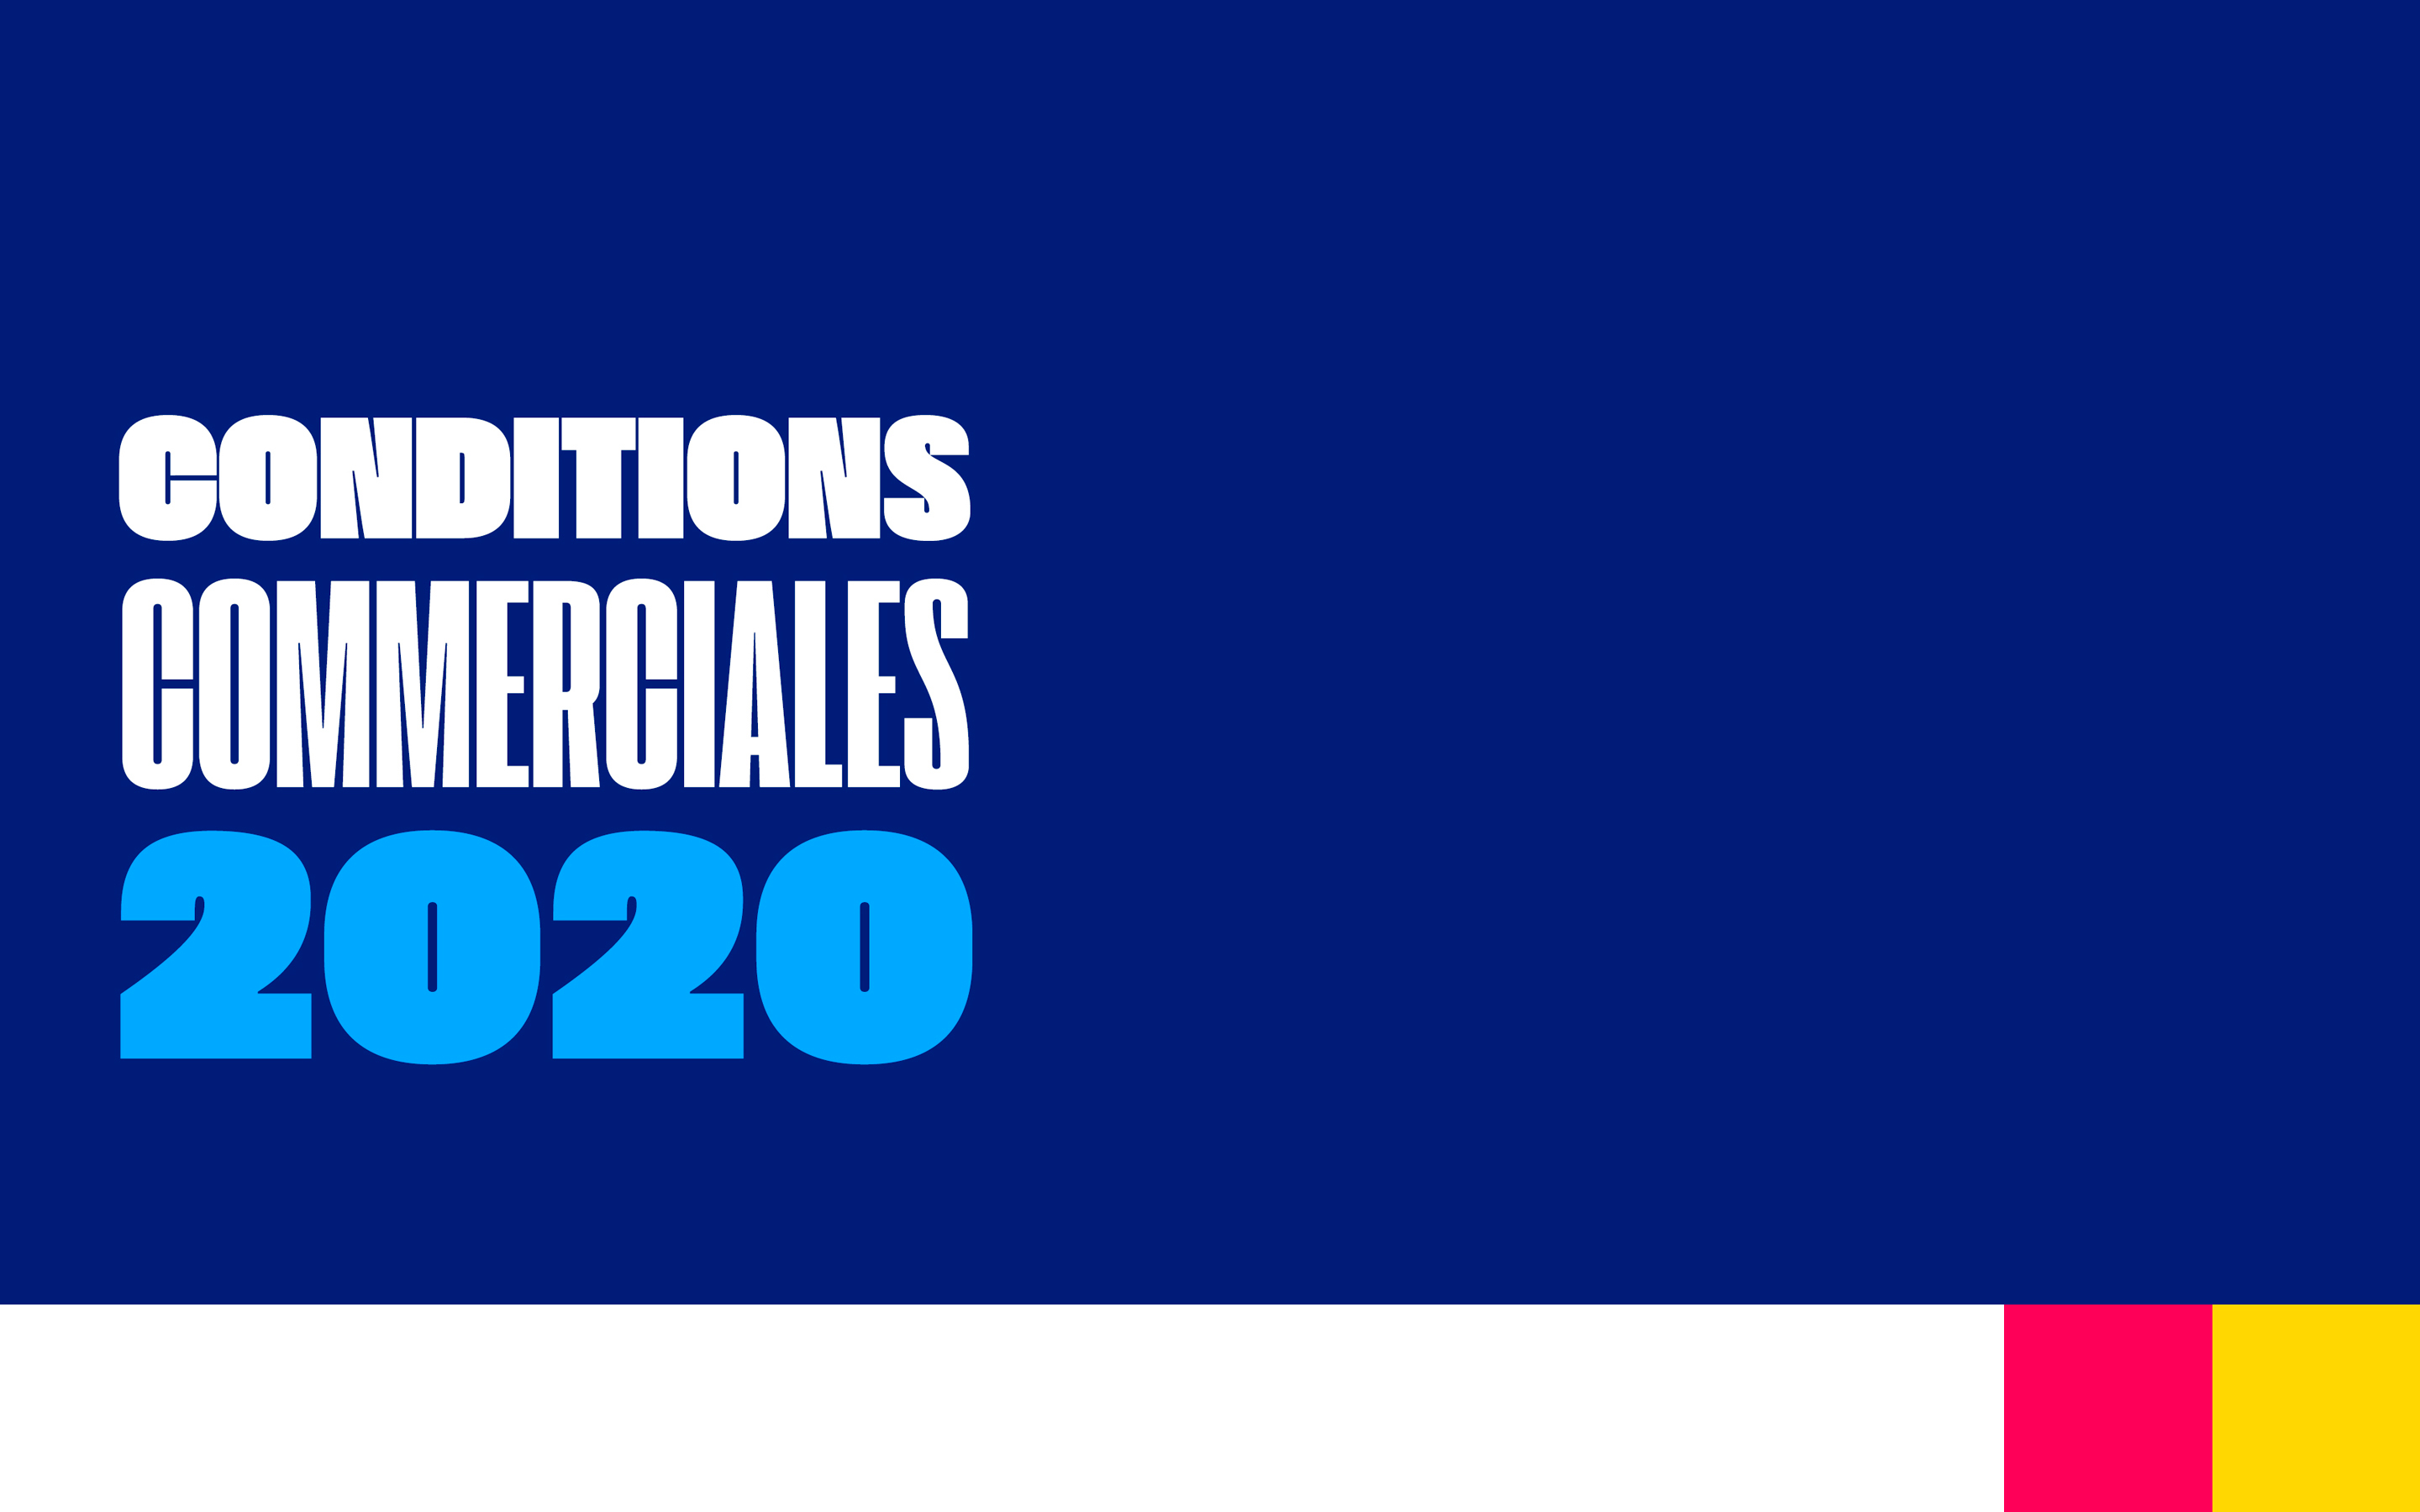 conditions-commerciales-tf1pub.jpg